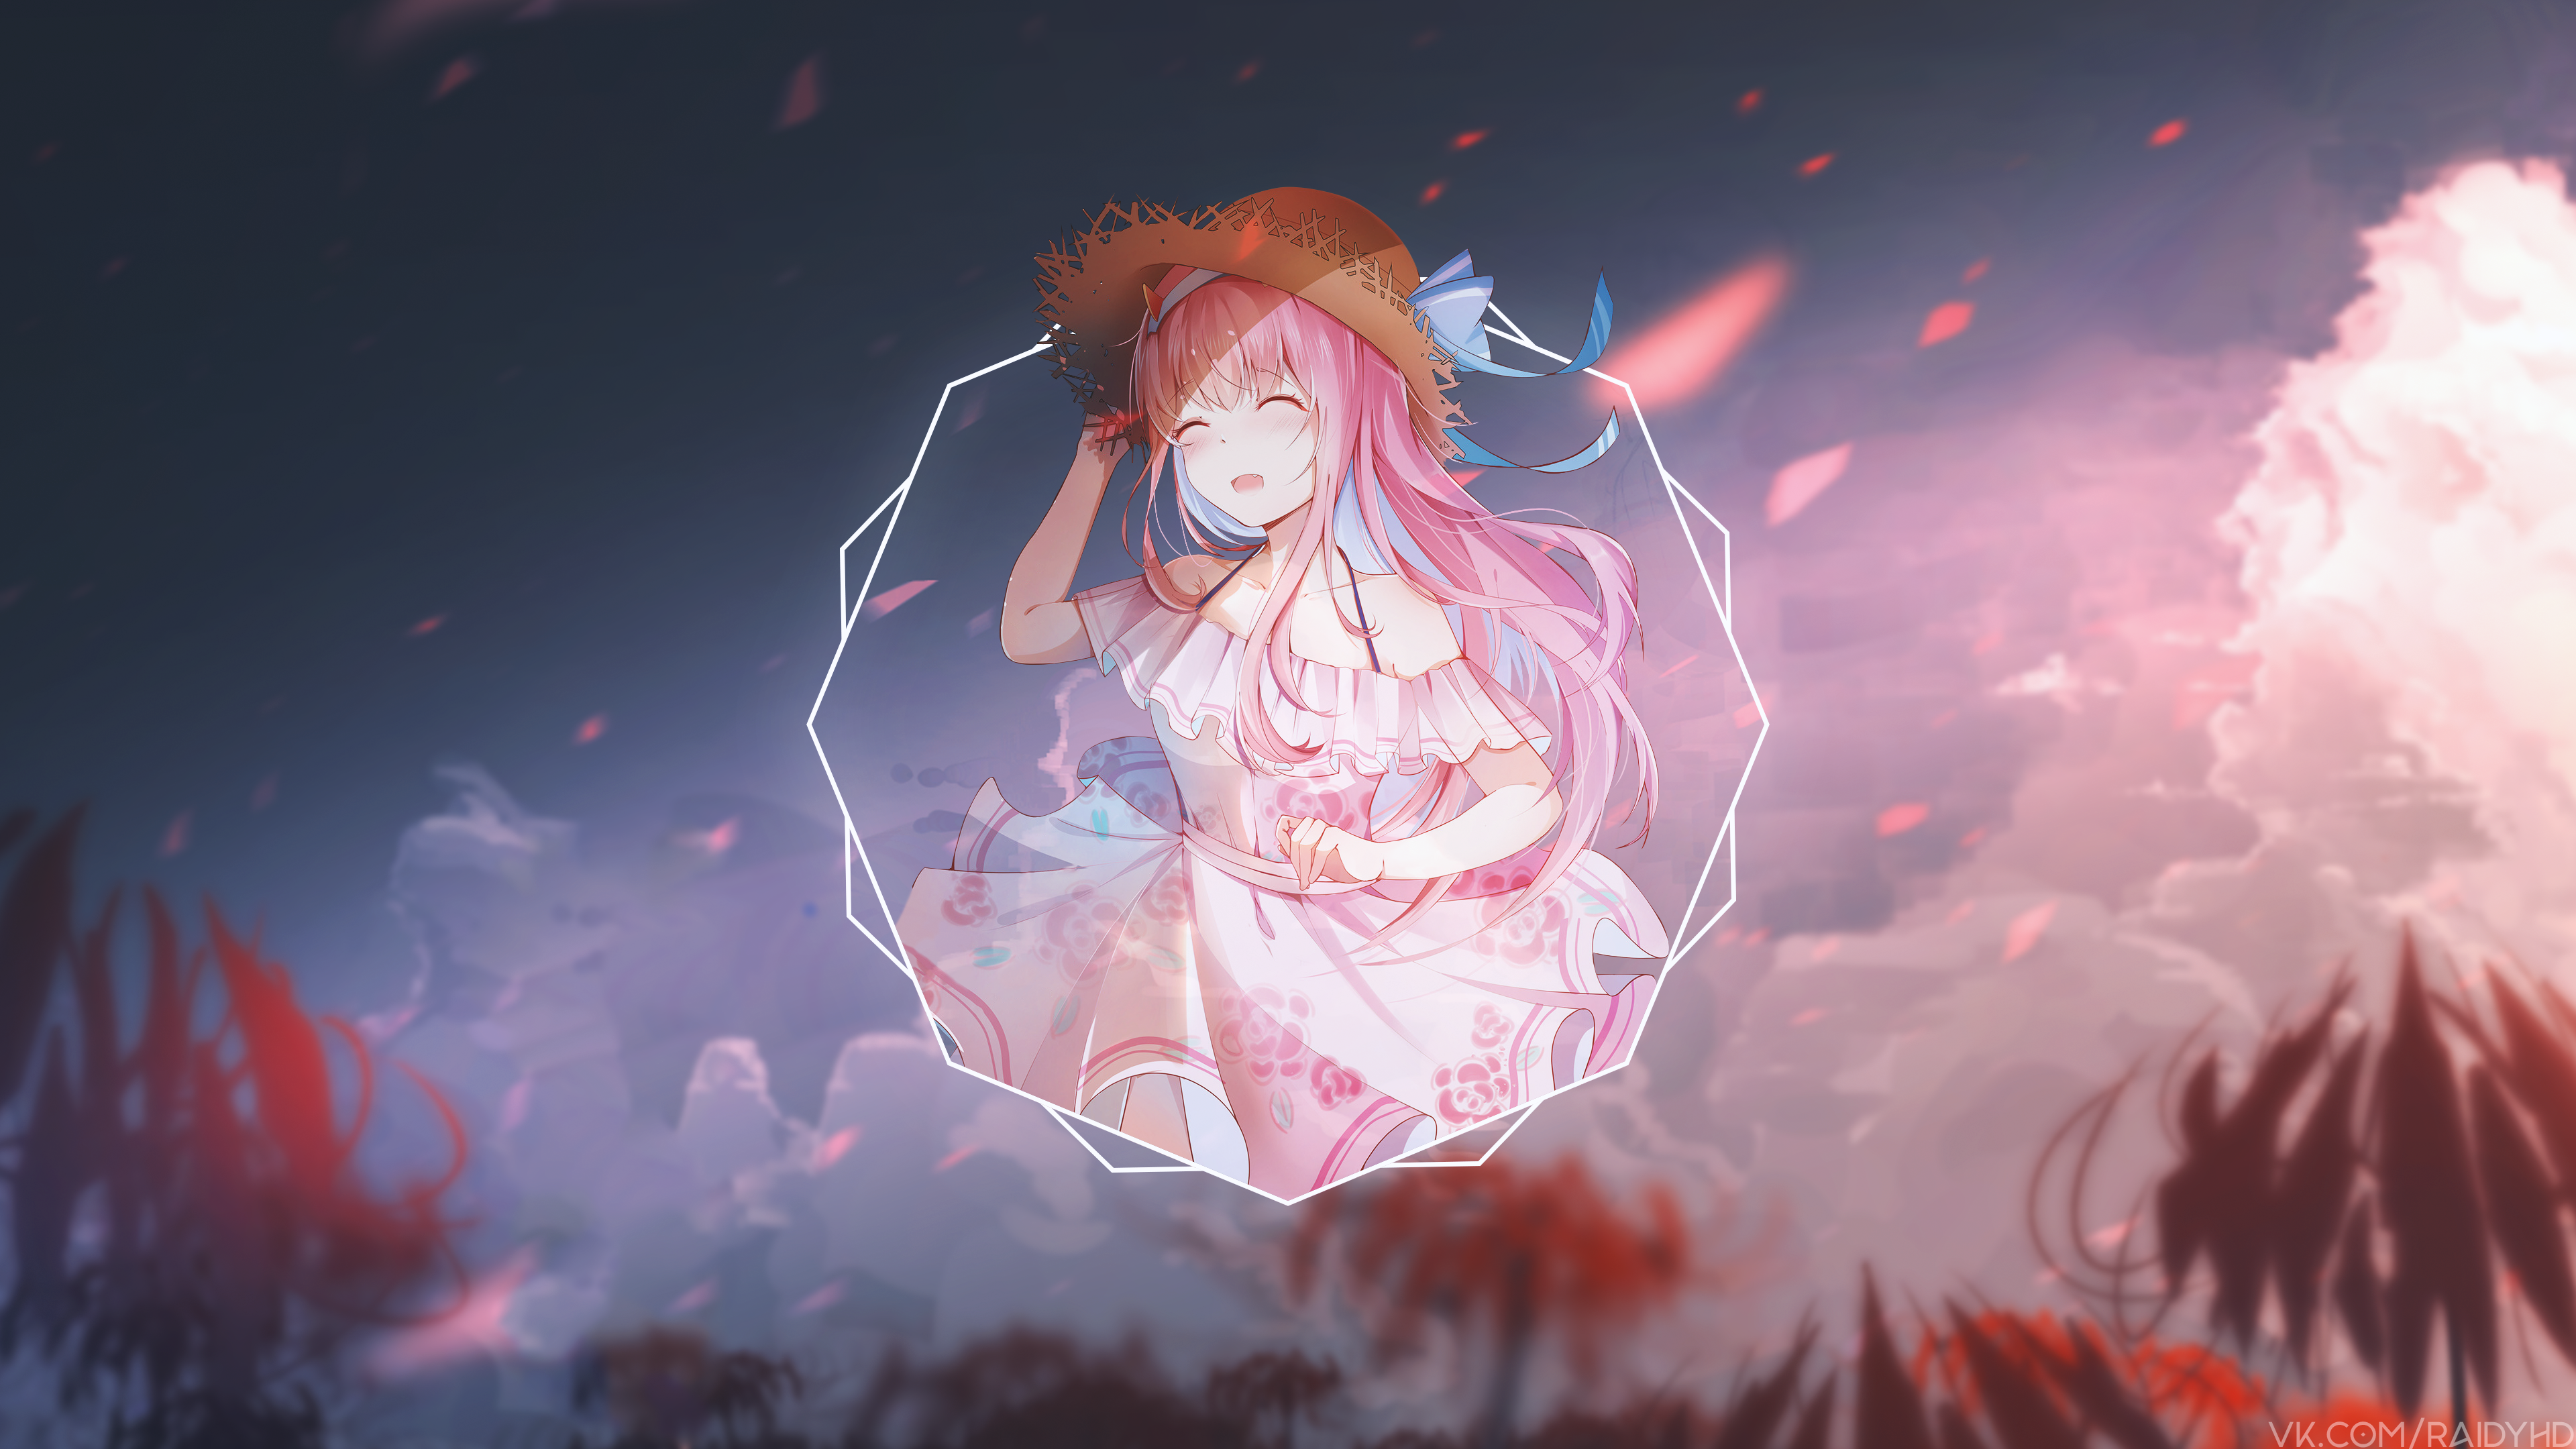 Anime 3840x2160 anime anime girls picture-in-picture Darling in the FranXX Zero Two (Darling in the FranXX) Code:002 (ZeroTwo)